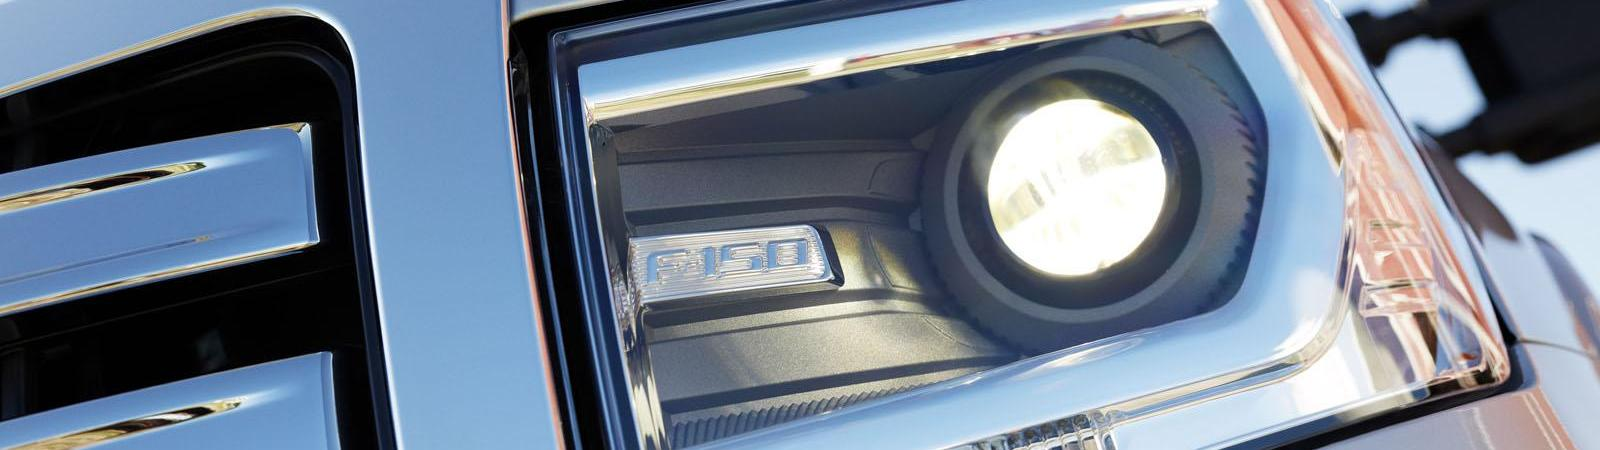 Ford pickup headlights for upgraded visibility at nighttime